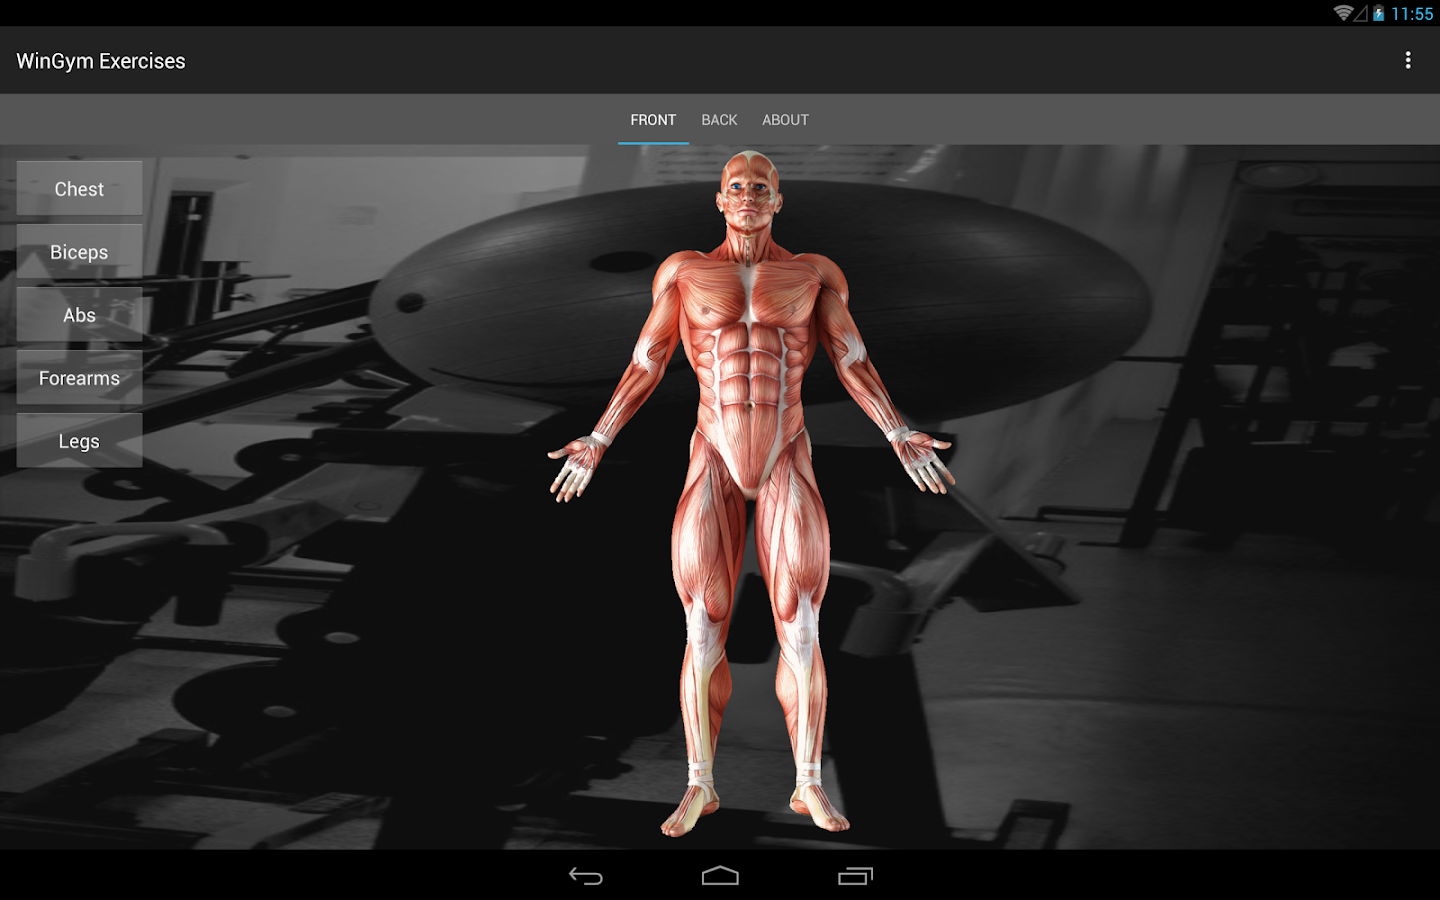 WinGym Exercises Premium Screenshot 4